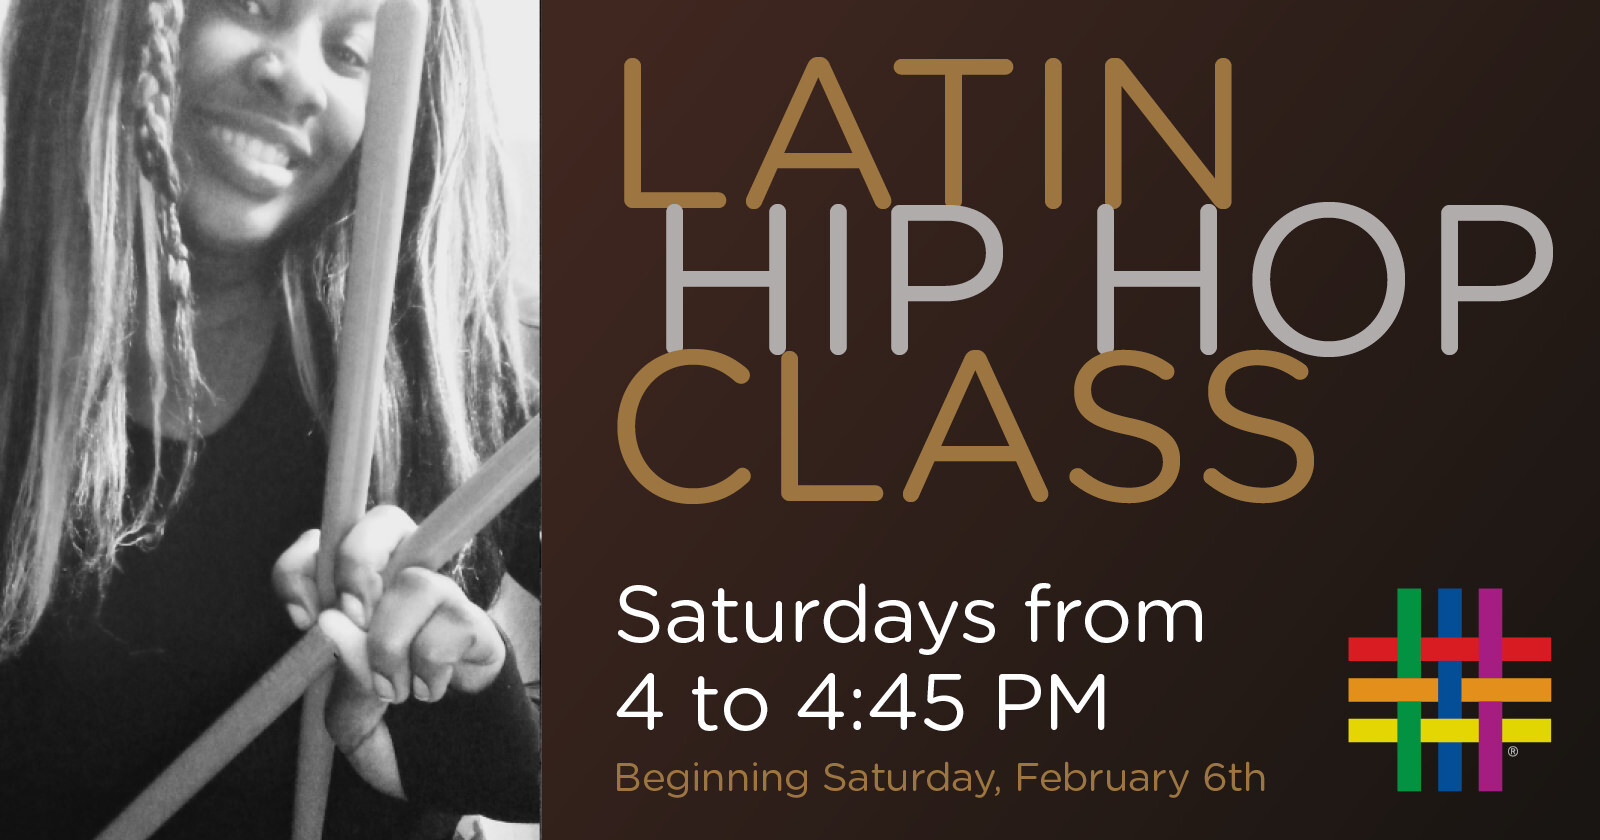 Latin Hip Hop Class at Brooklyn Community Pride Center